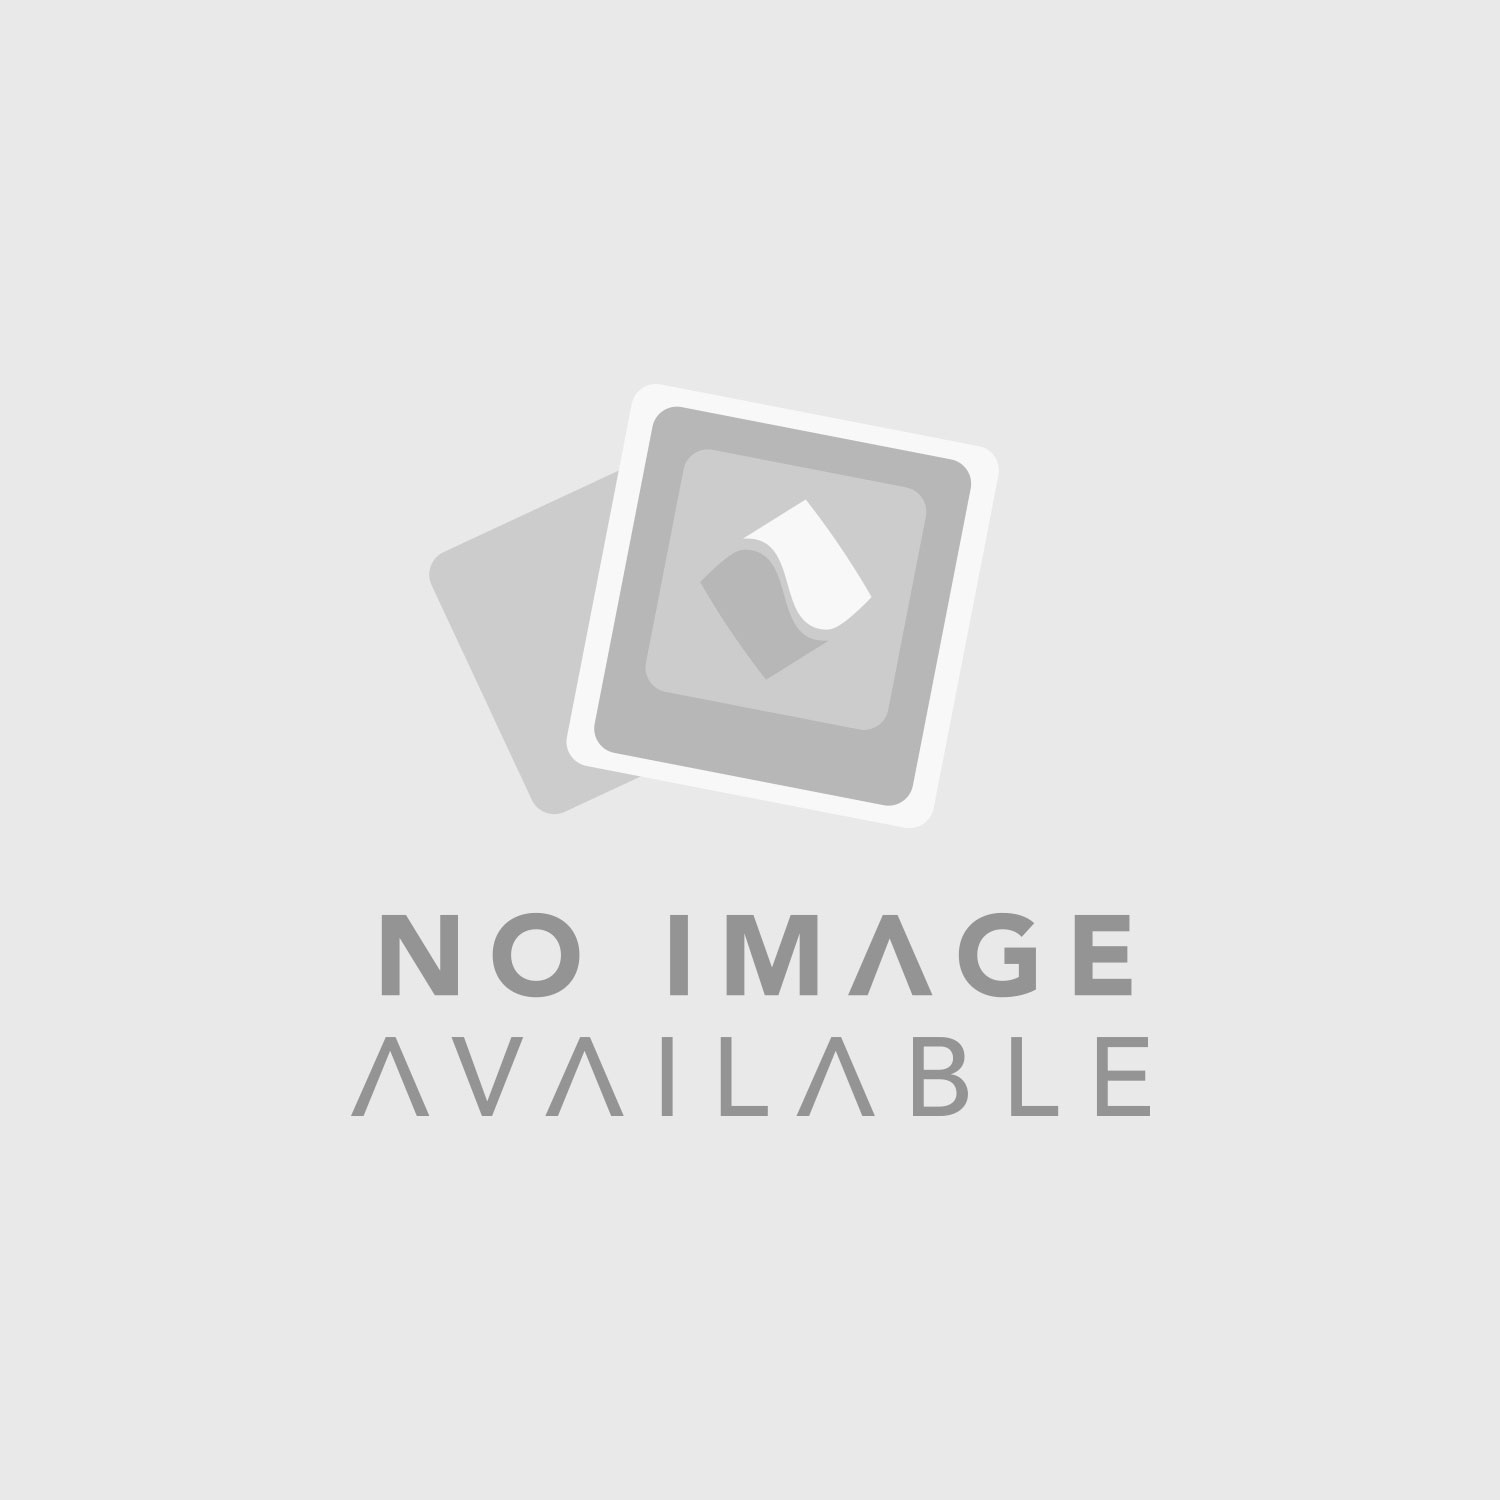 Eartec SSTSC3000LP Two-Way Radio System with SST Headsets